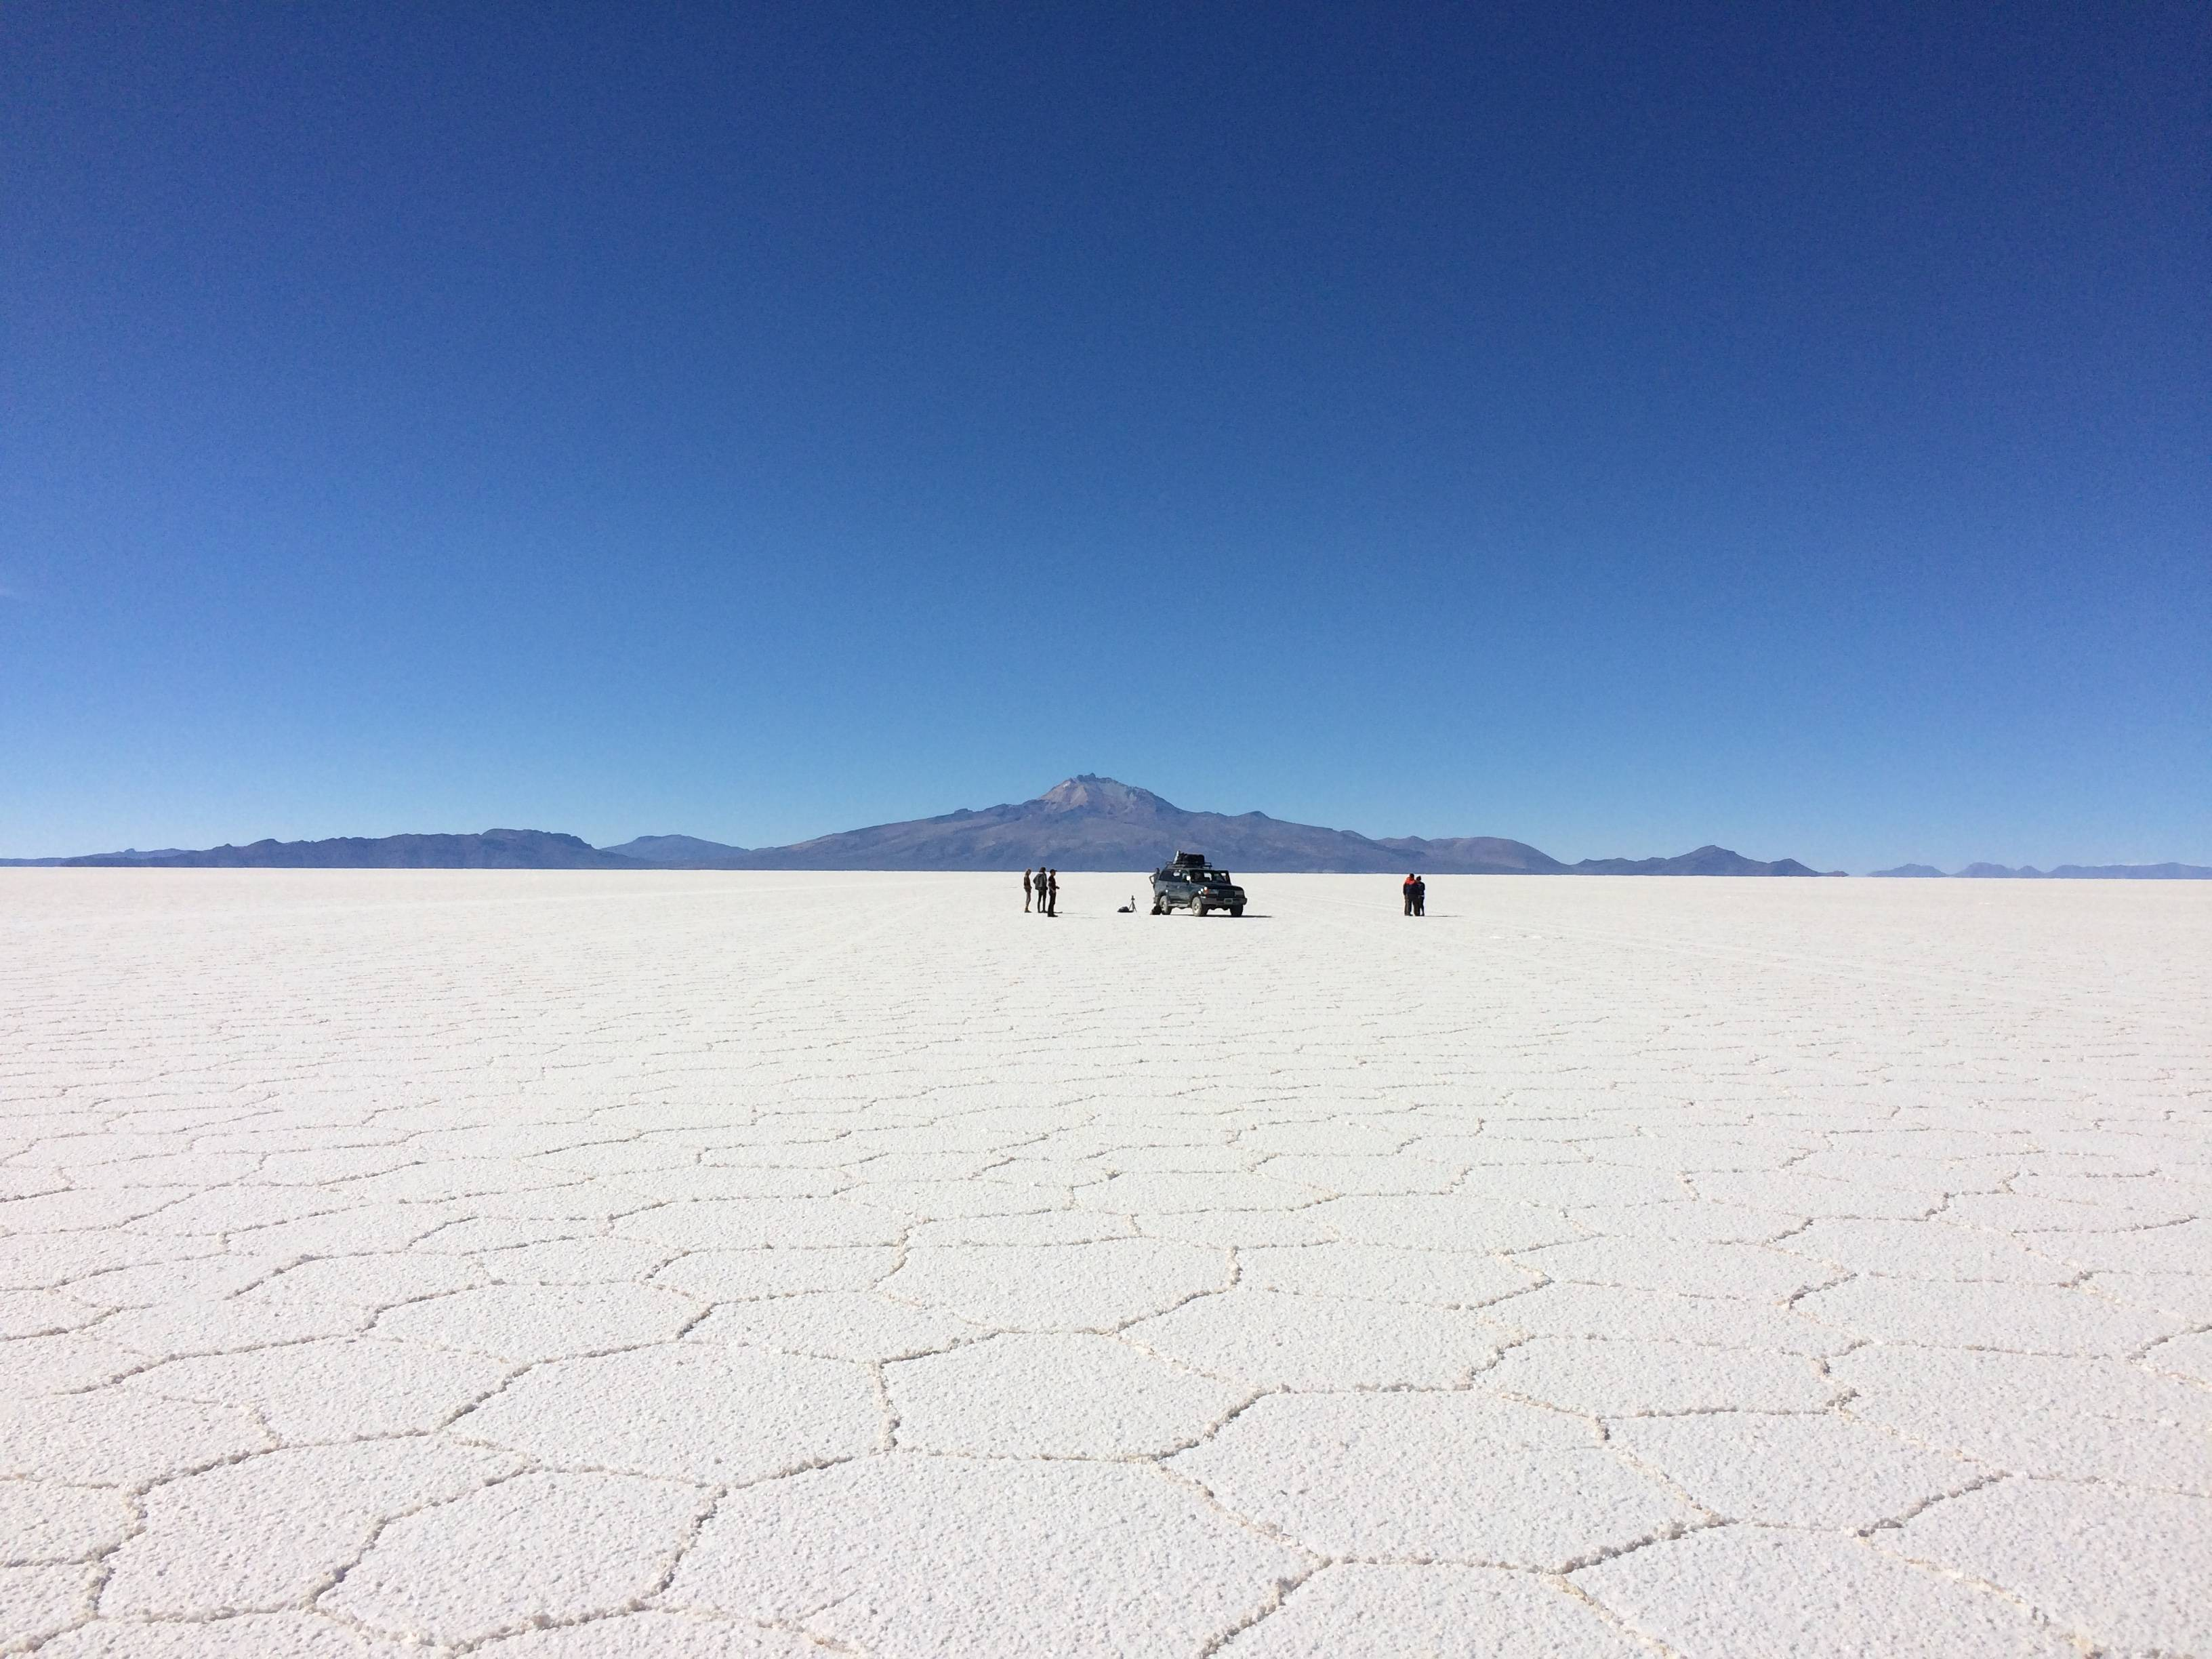 Photo 1: Salar d'Uyuni et Sud-Lipez